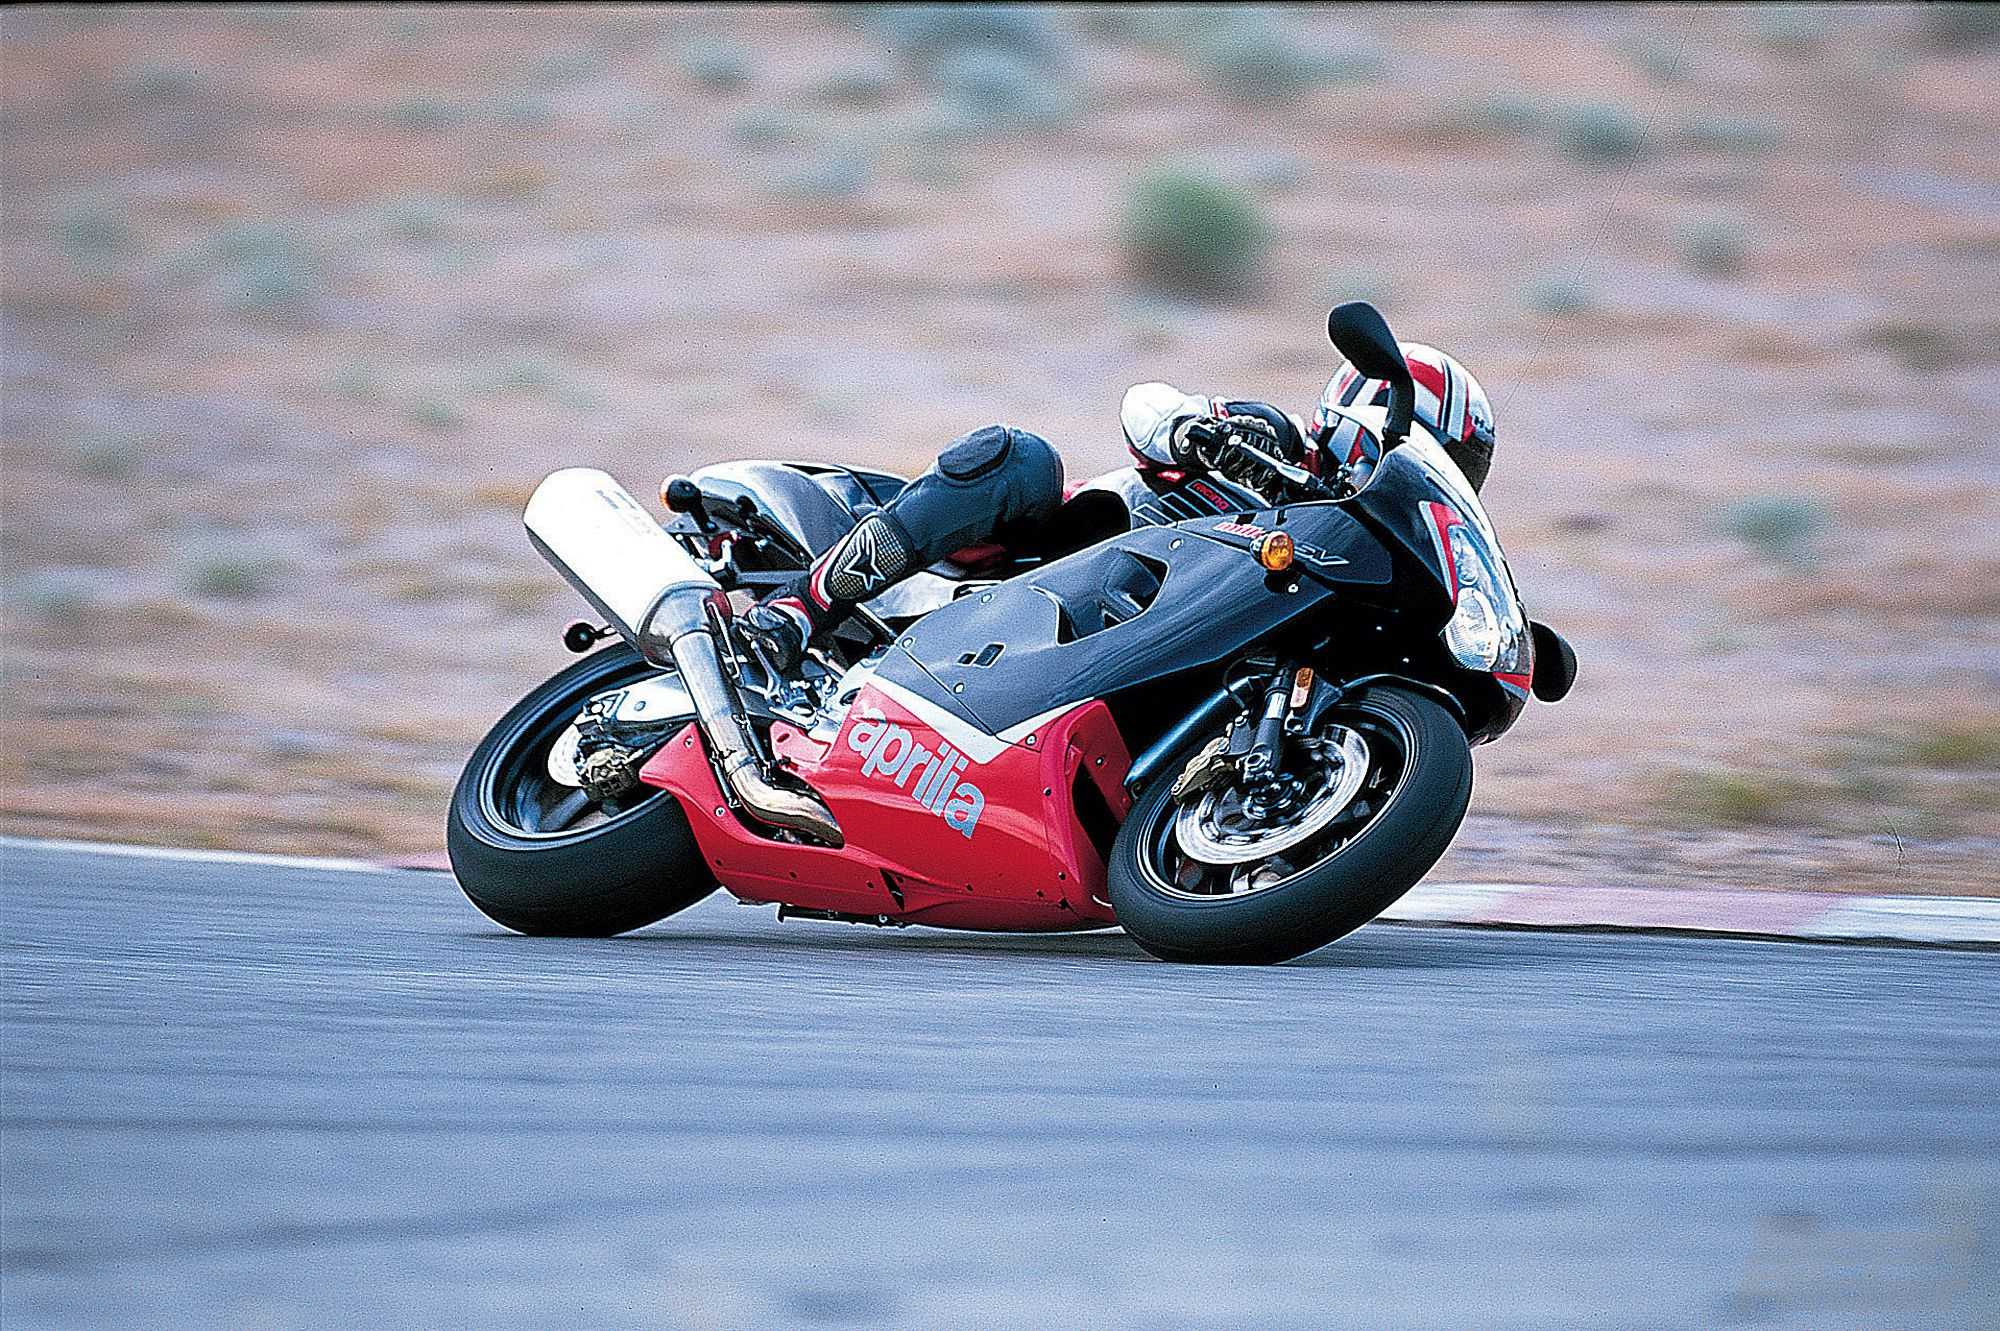 hight resolution of v twin comparison of the ducati 996 vs aprilia rsv mille vs honda